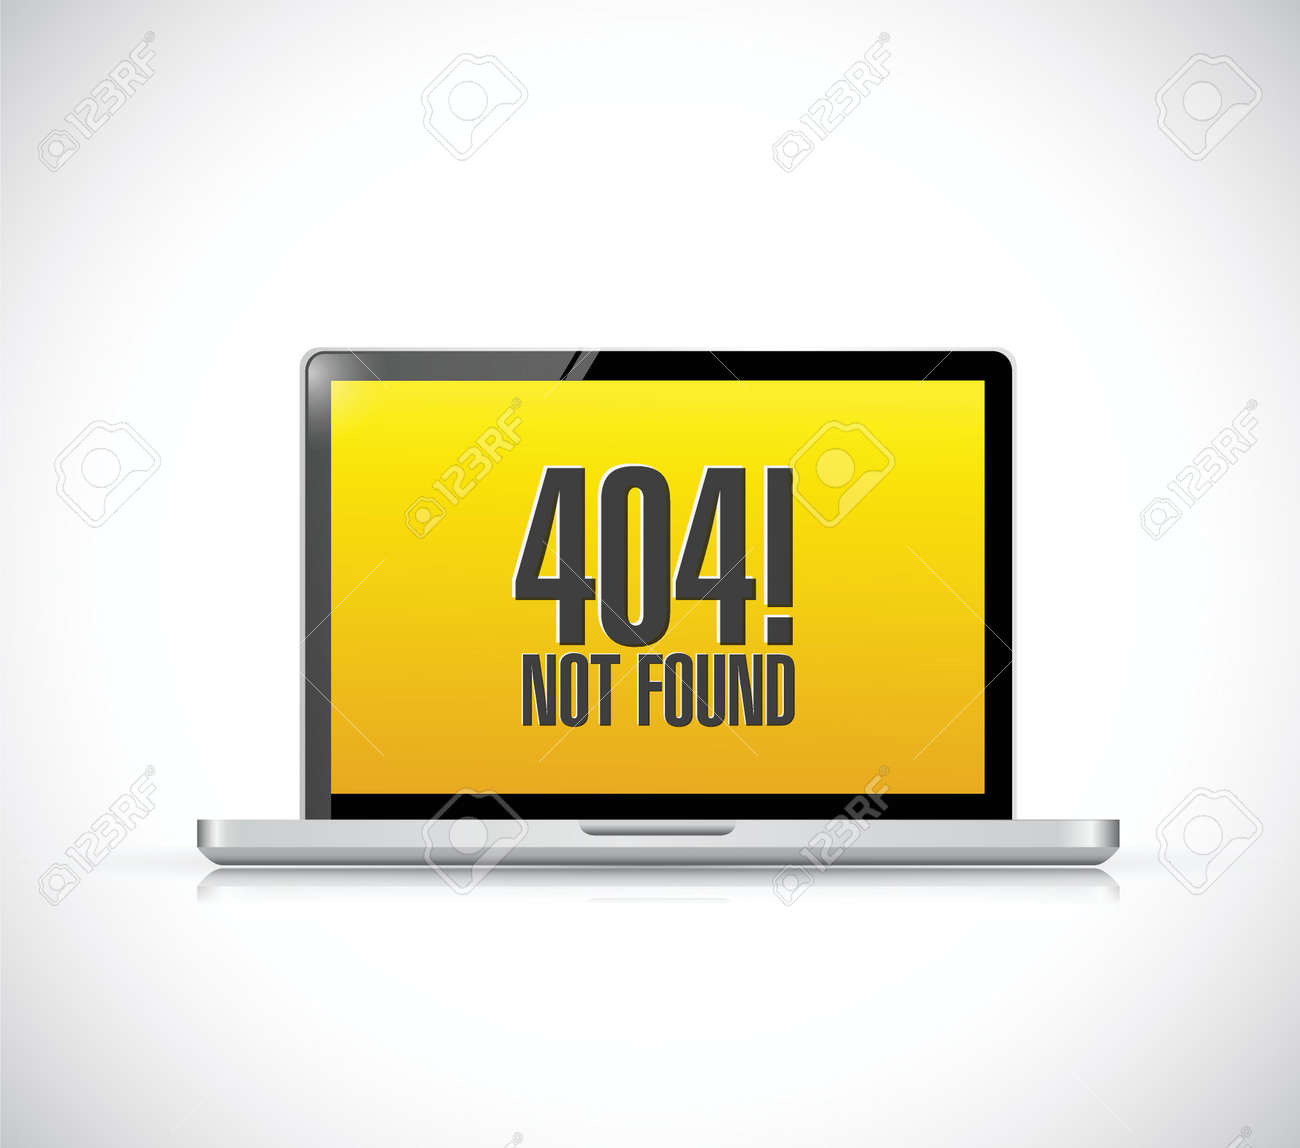 Background image 404 not found - 404 Not Found Message On A Computer Illustration Design Over A White Background Stock Vector